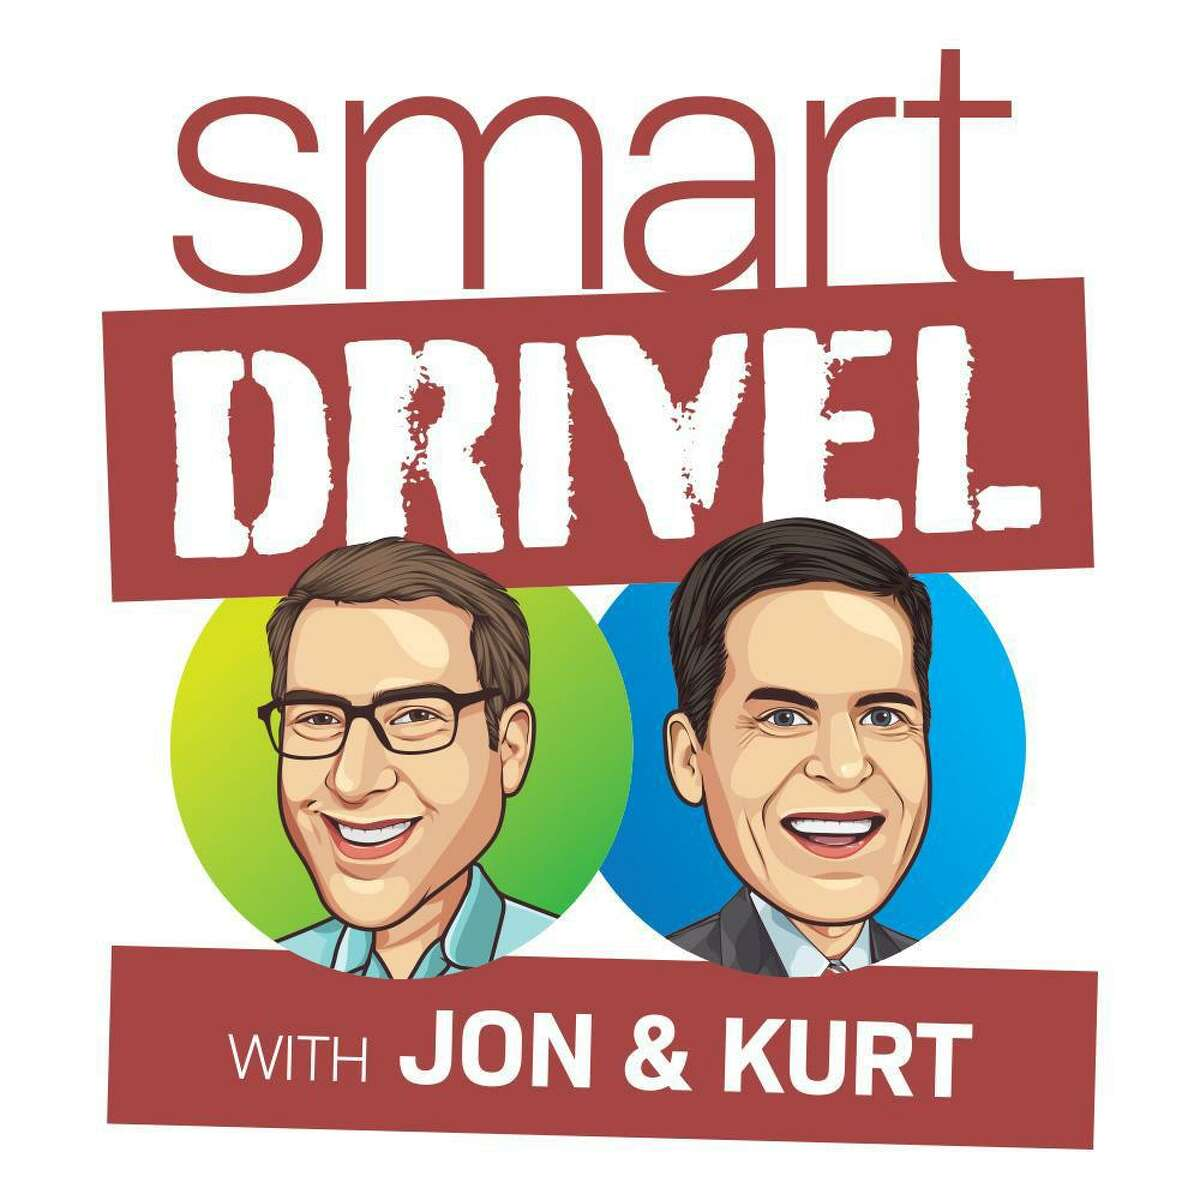 """Jon Ellenthal and Kurt Schneider of Wilton are hosts of the new podcast """"Smart Drivel,"""" which fans say is like """"eavesdropping on a private conversation."""""""